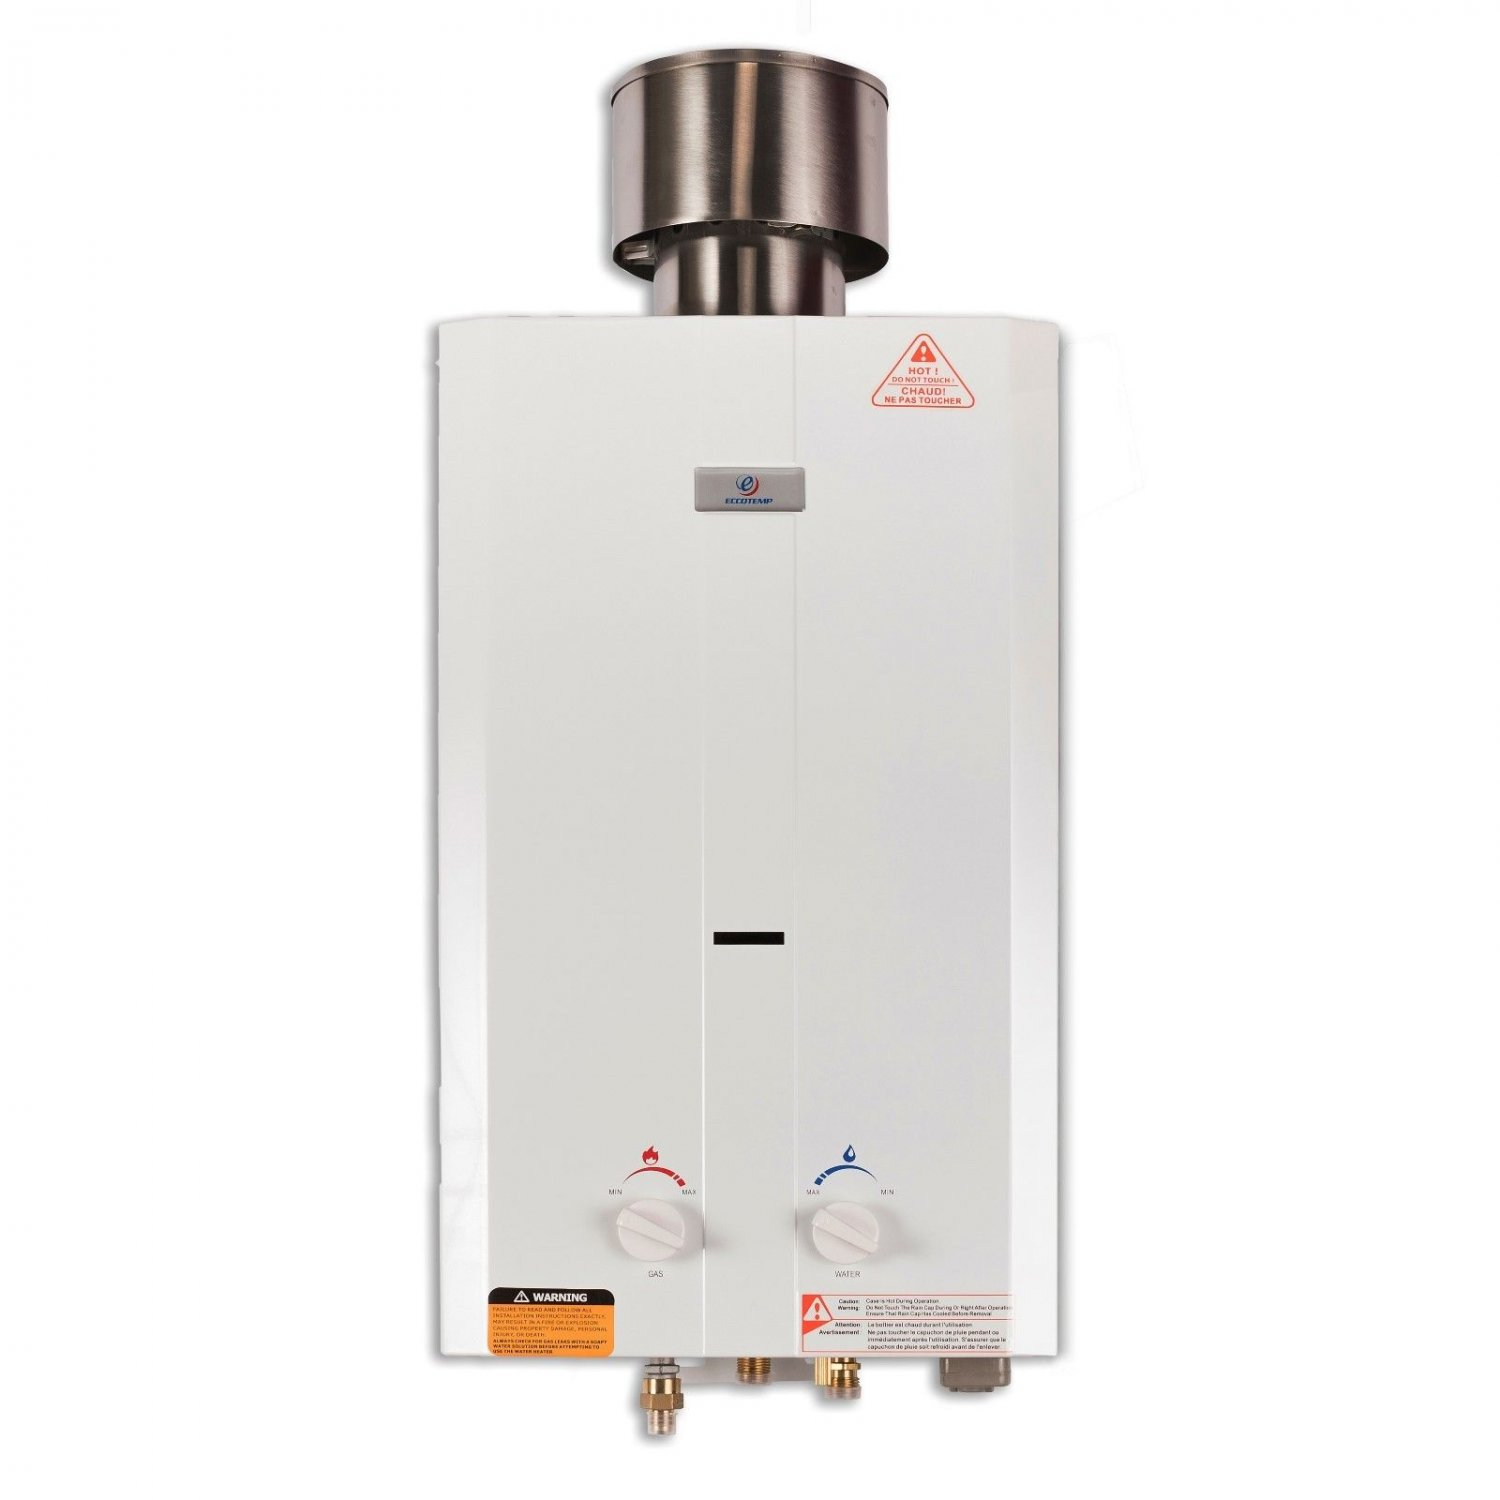 Eccotemp L10 Portable Outdoor Tankless Water Heater Shower